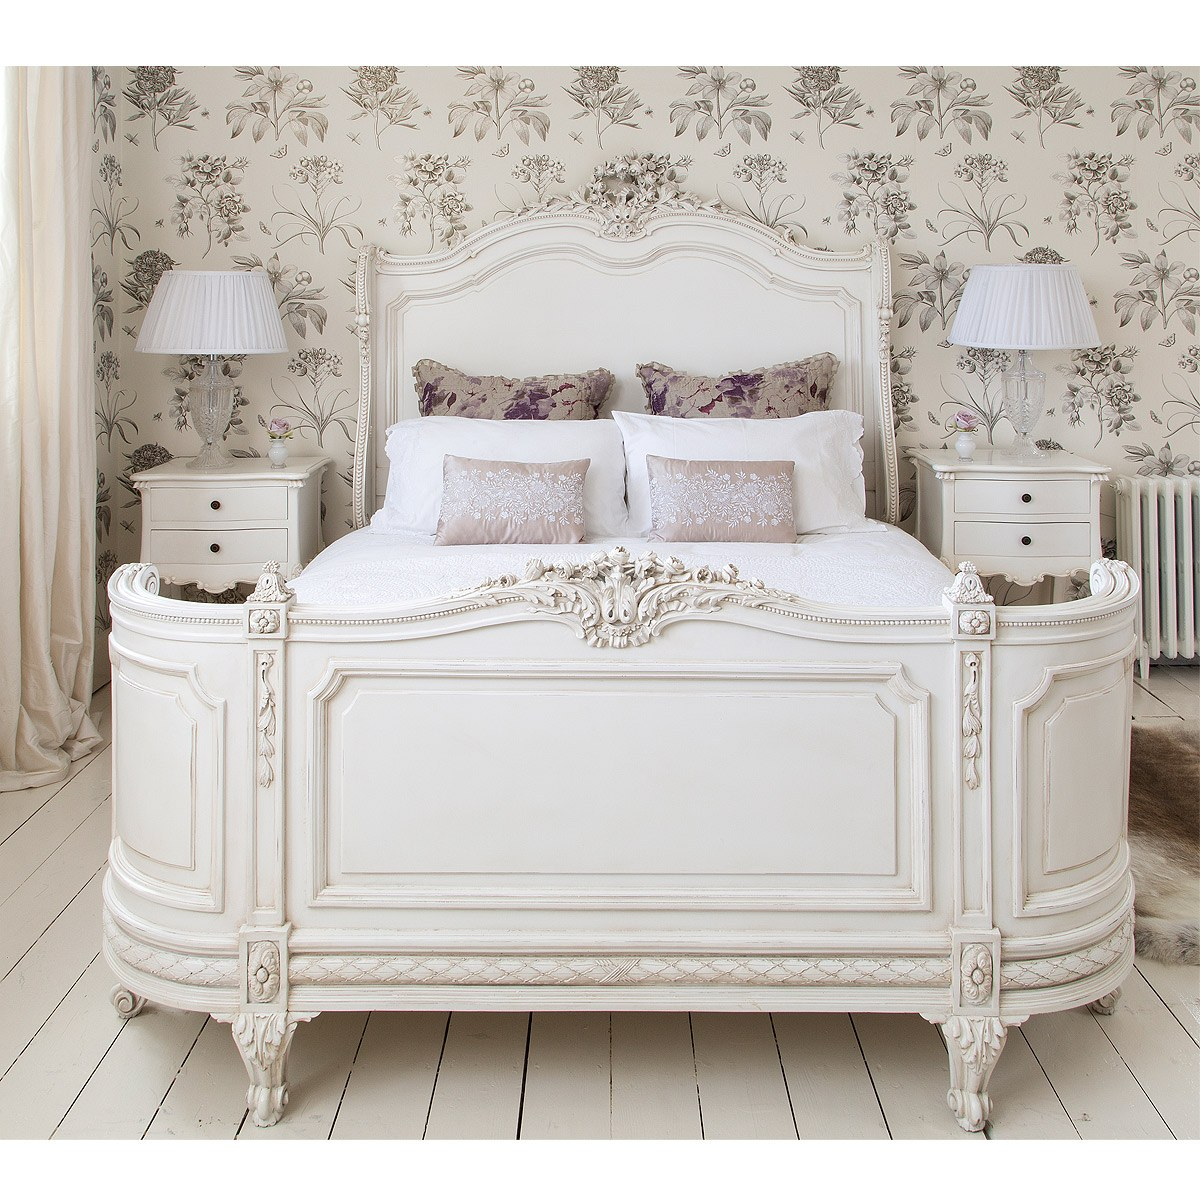 Provencal Bonaparte French Bed French Bedroom Company